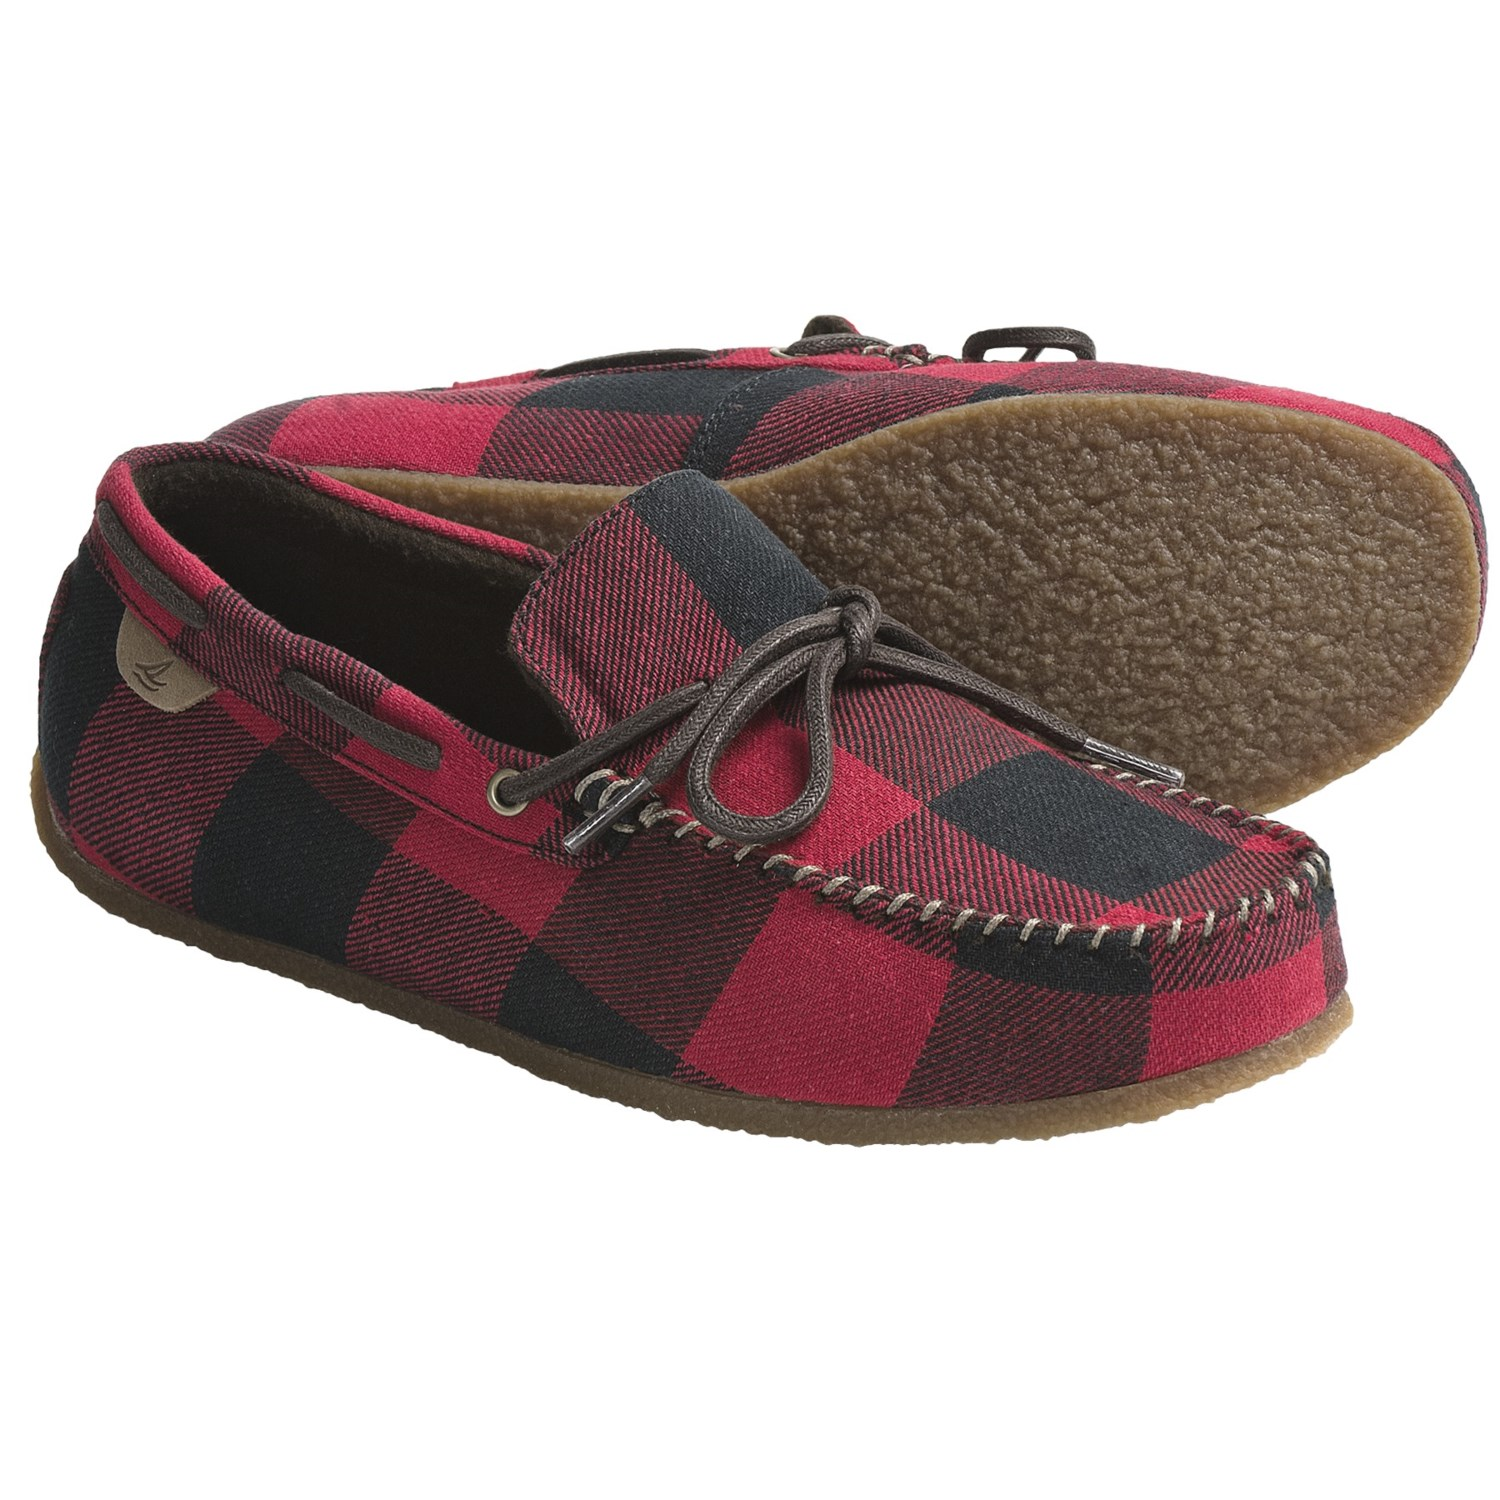 Cozy Style Guide For The Top 13 Best Men's Slippers For keen men, slippers are an emblem of their astute fashion repertoire. This personal piece of attire can define the foundational nature of a man's casual demeanor.